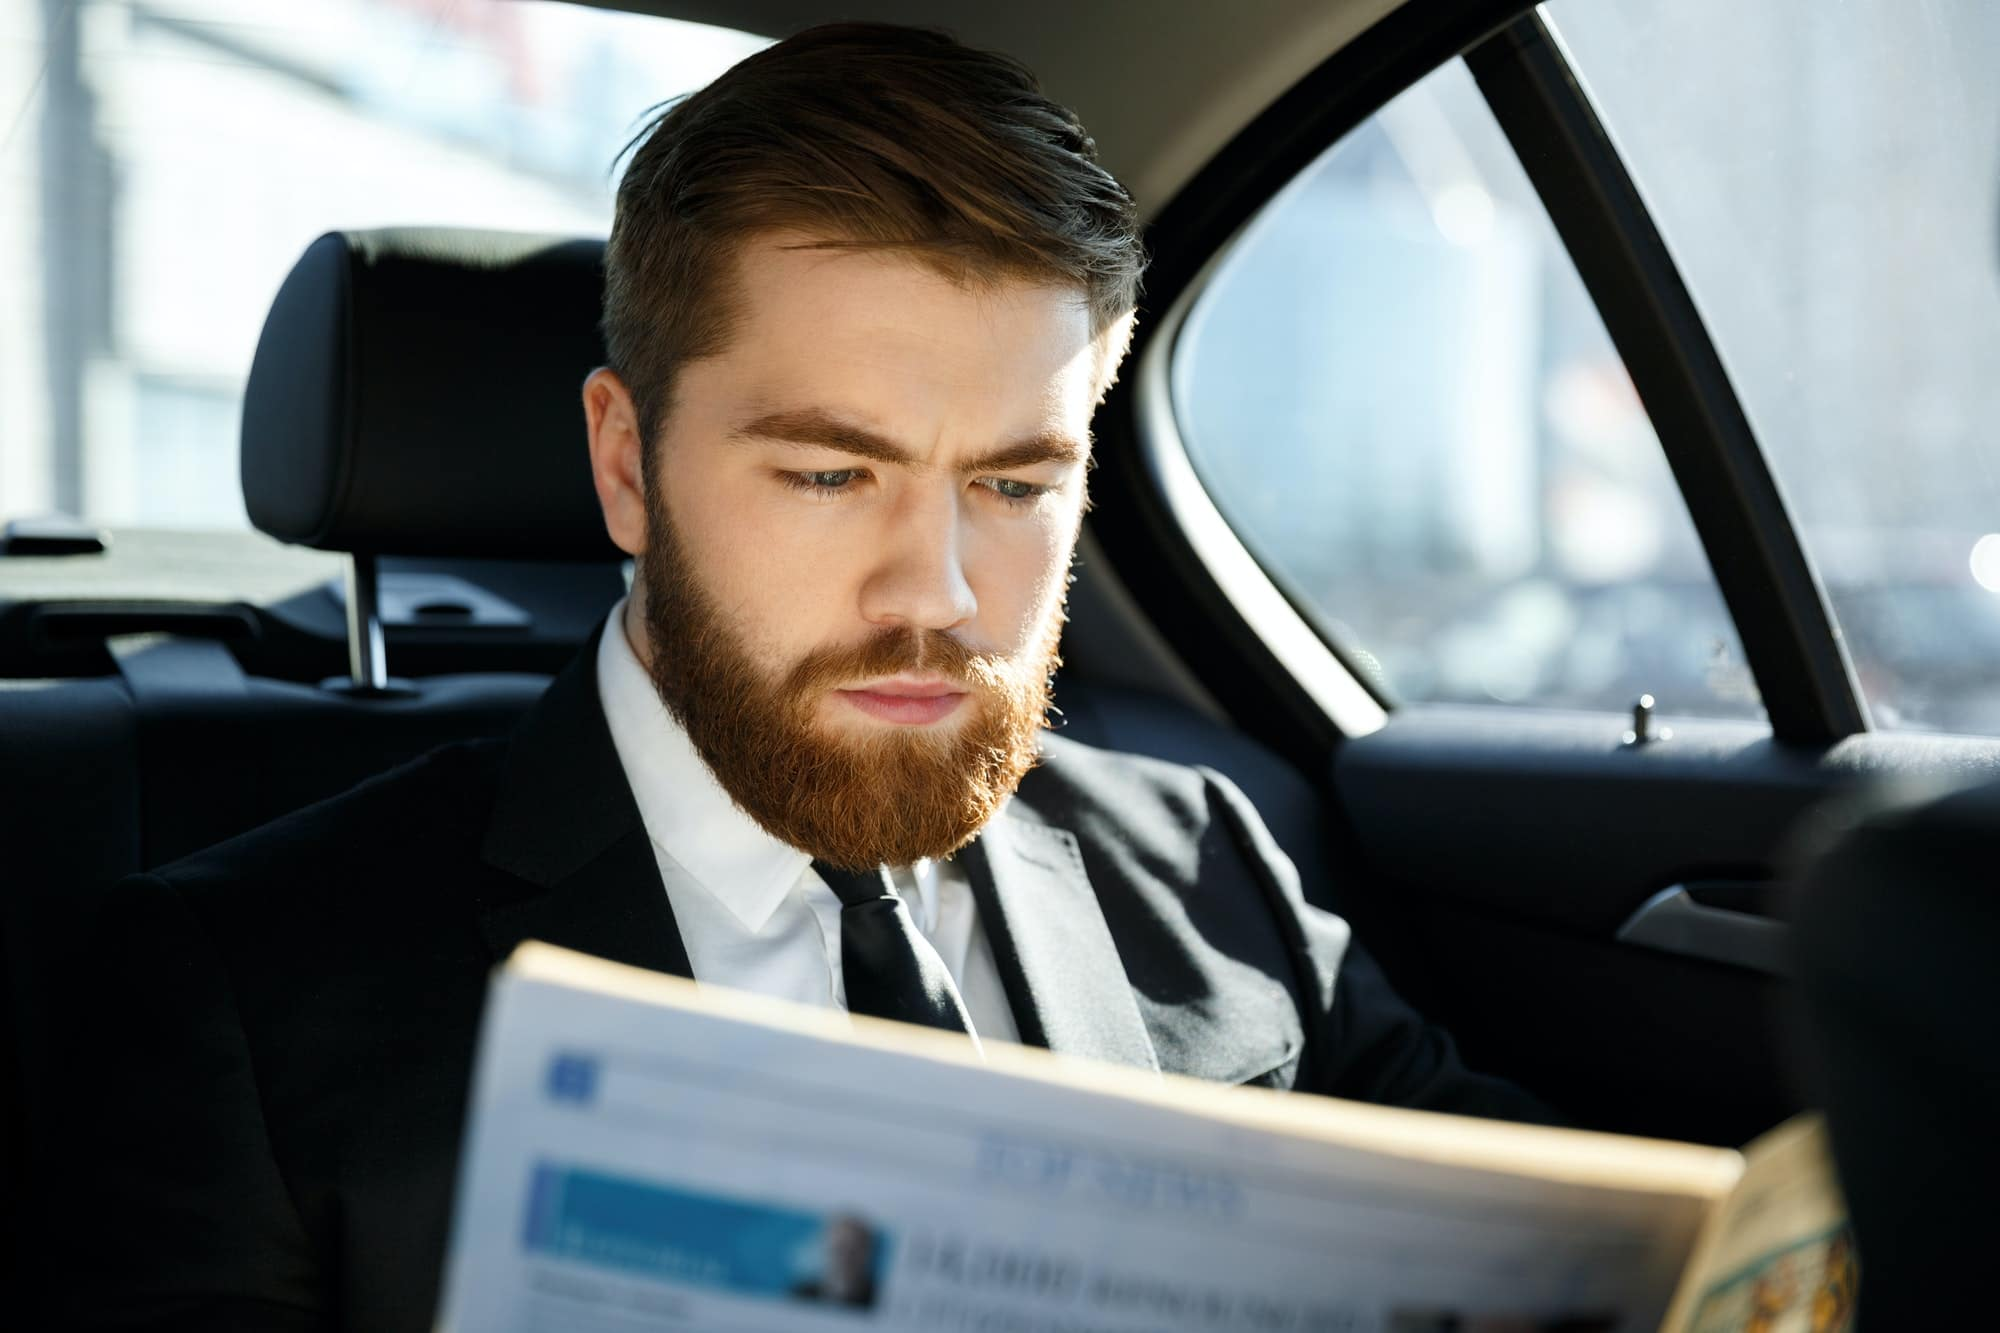 Concentrated business man reading newspaper